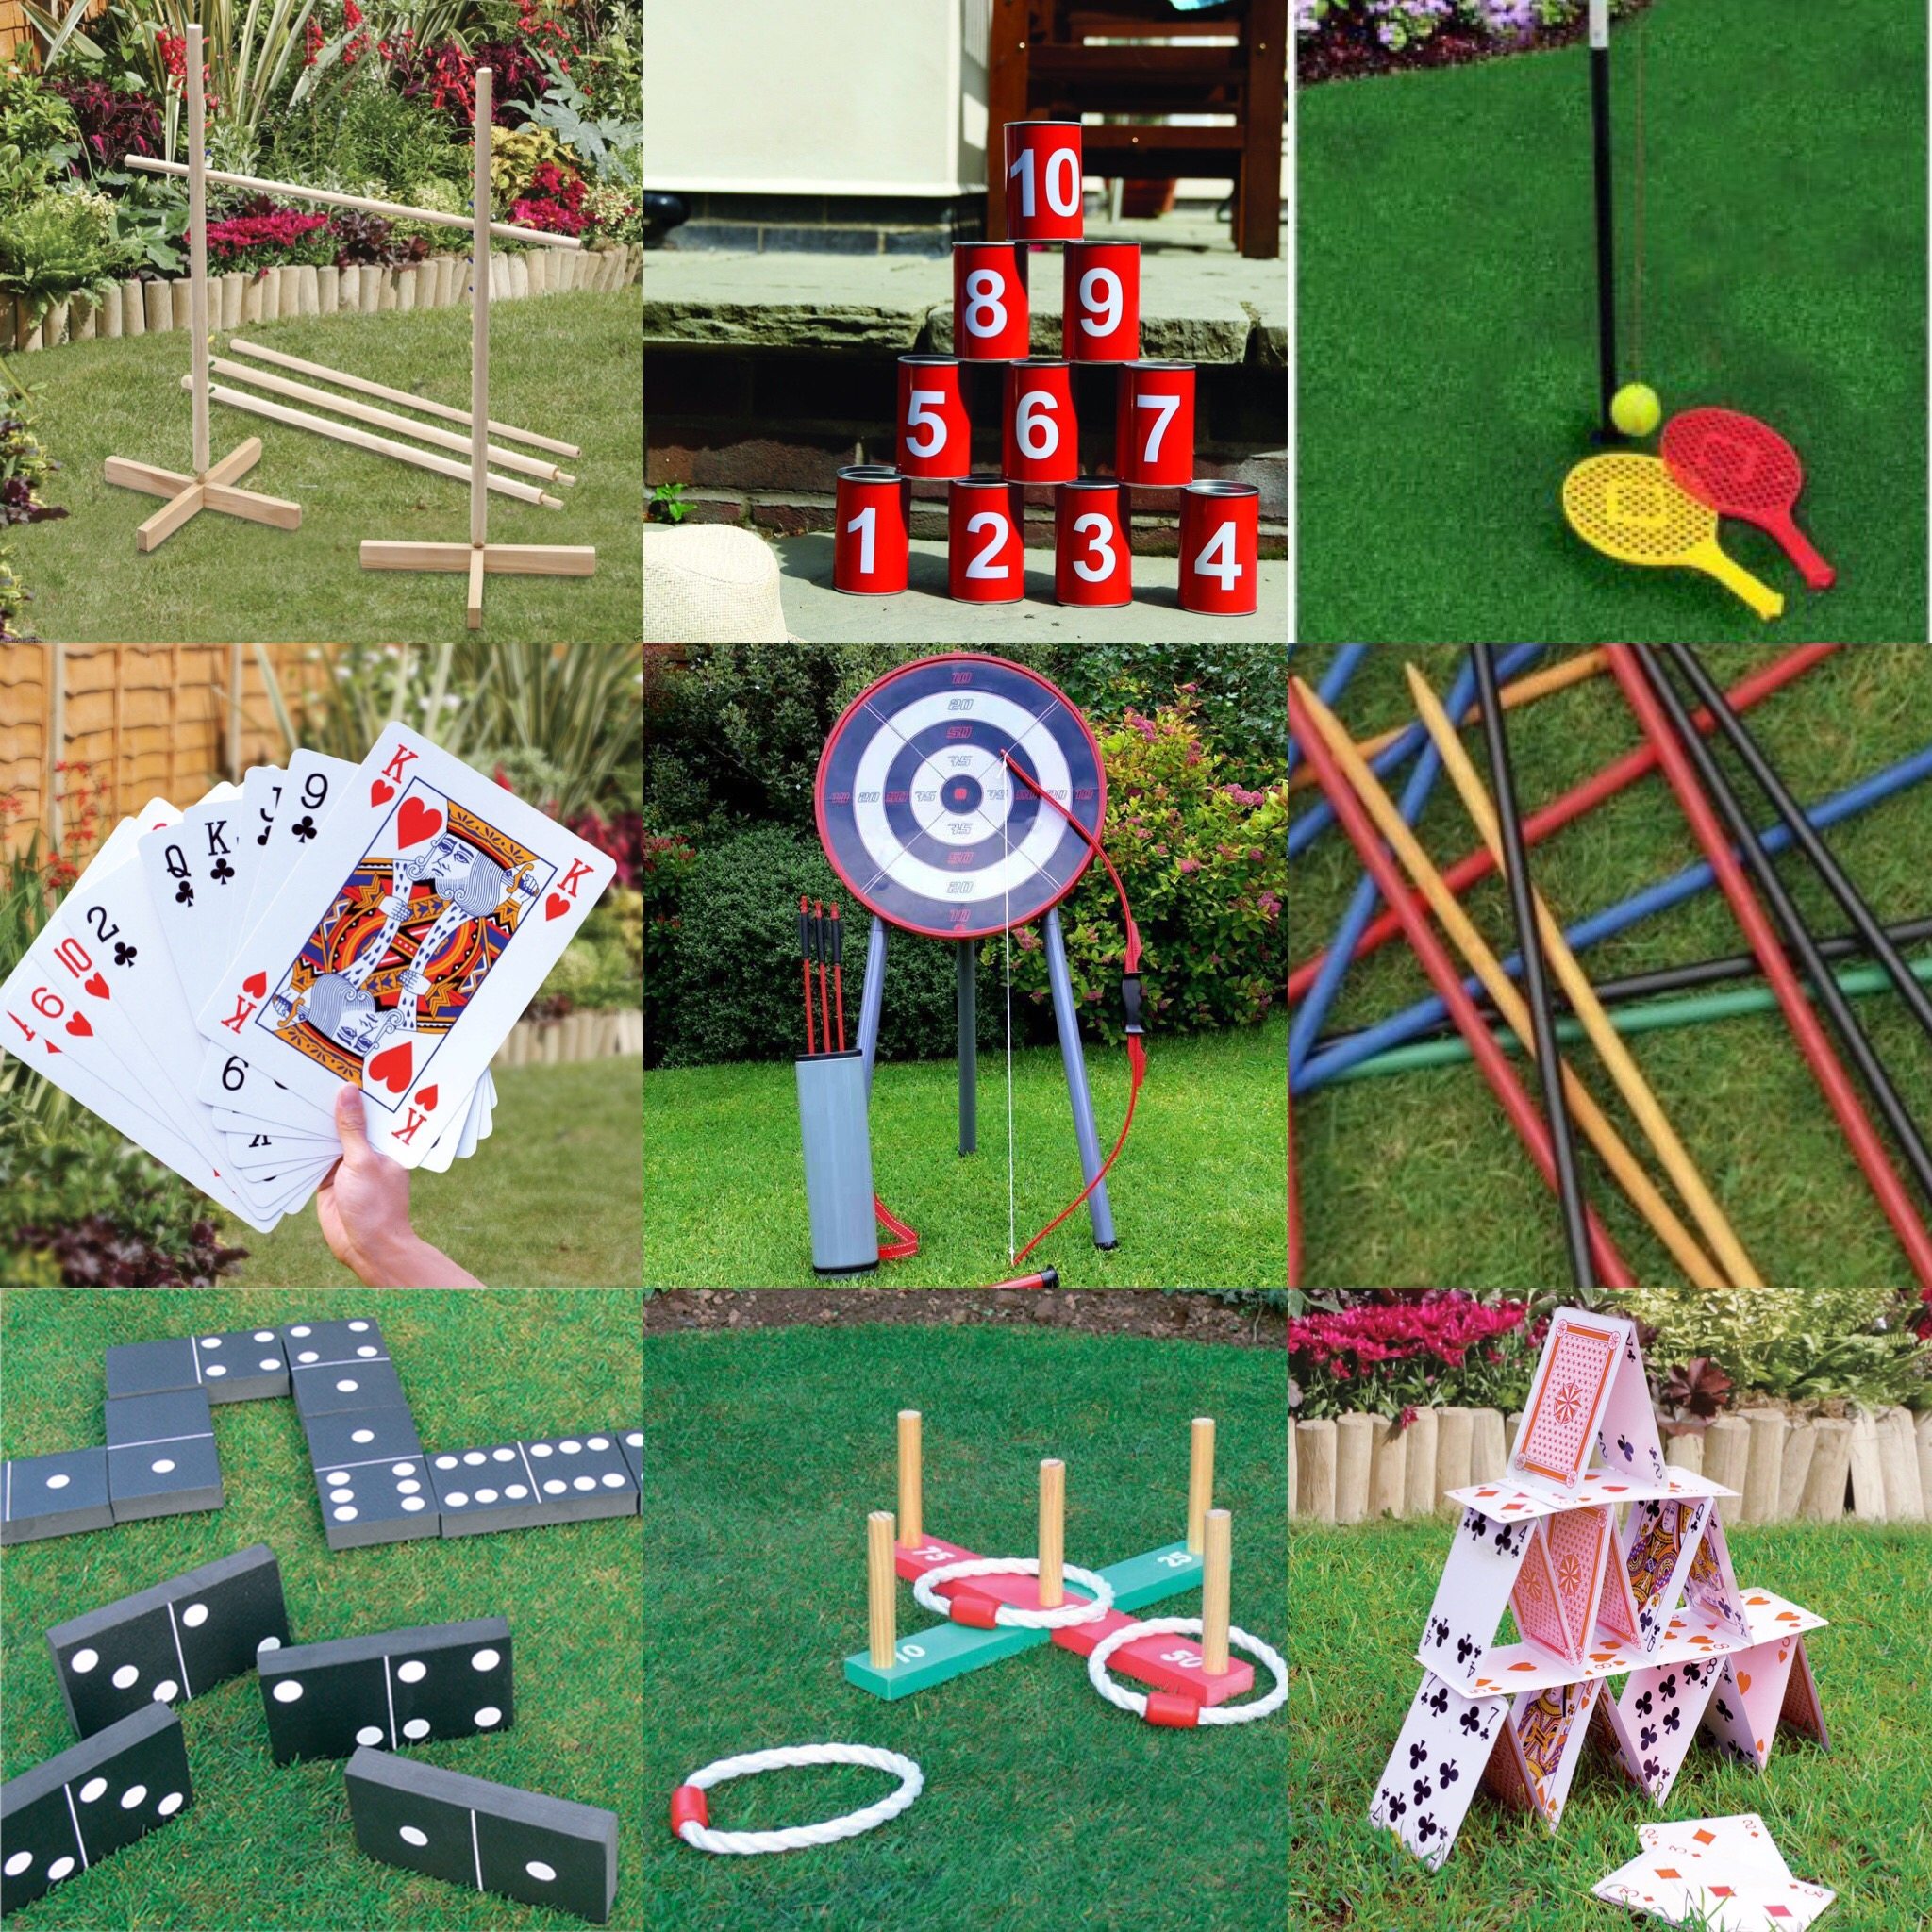 NEW KINGFISHER GARDEN OUTDOOR GAMES KIDS BOYS GIRLS ADULTS